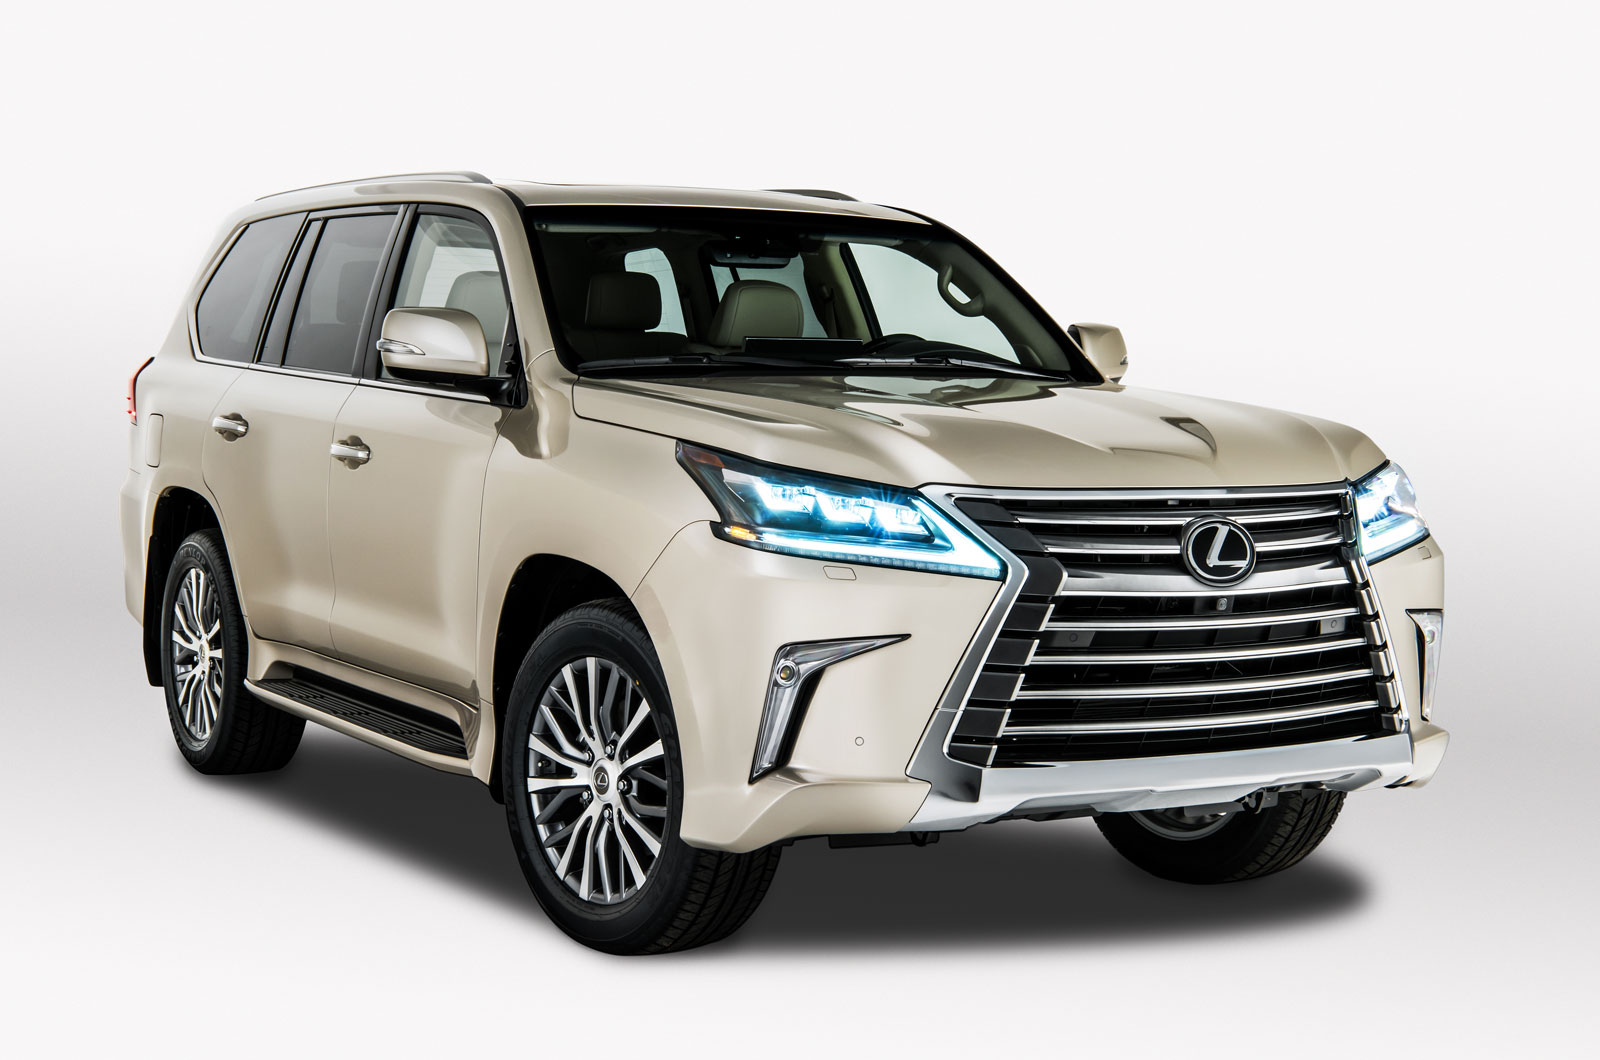 lexus rx l new seven seat suv prices unveiled autocar. Black Bedroom Furniture Sets. Home Design Ideas